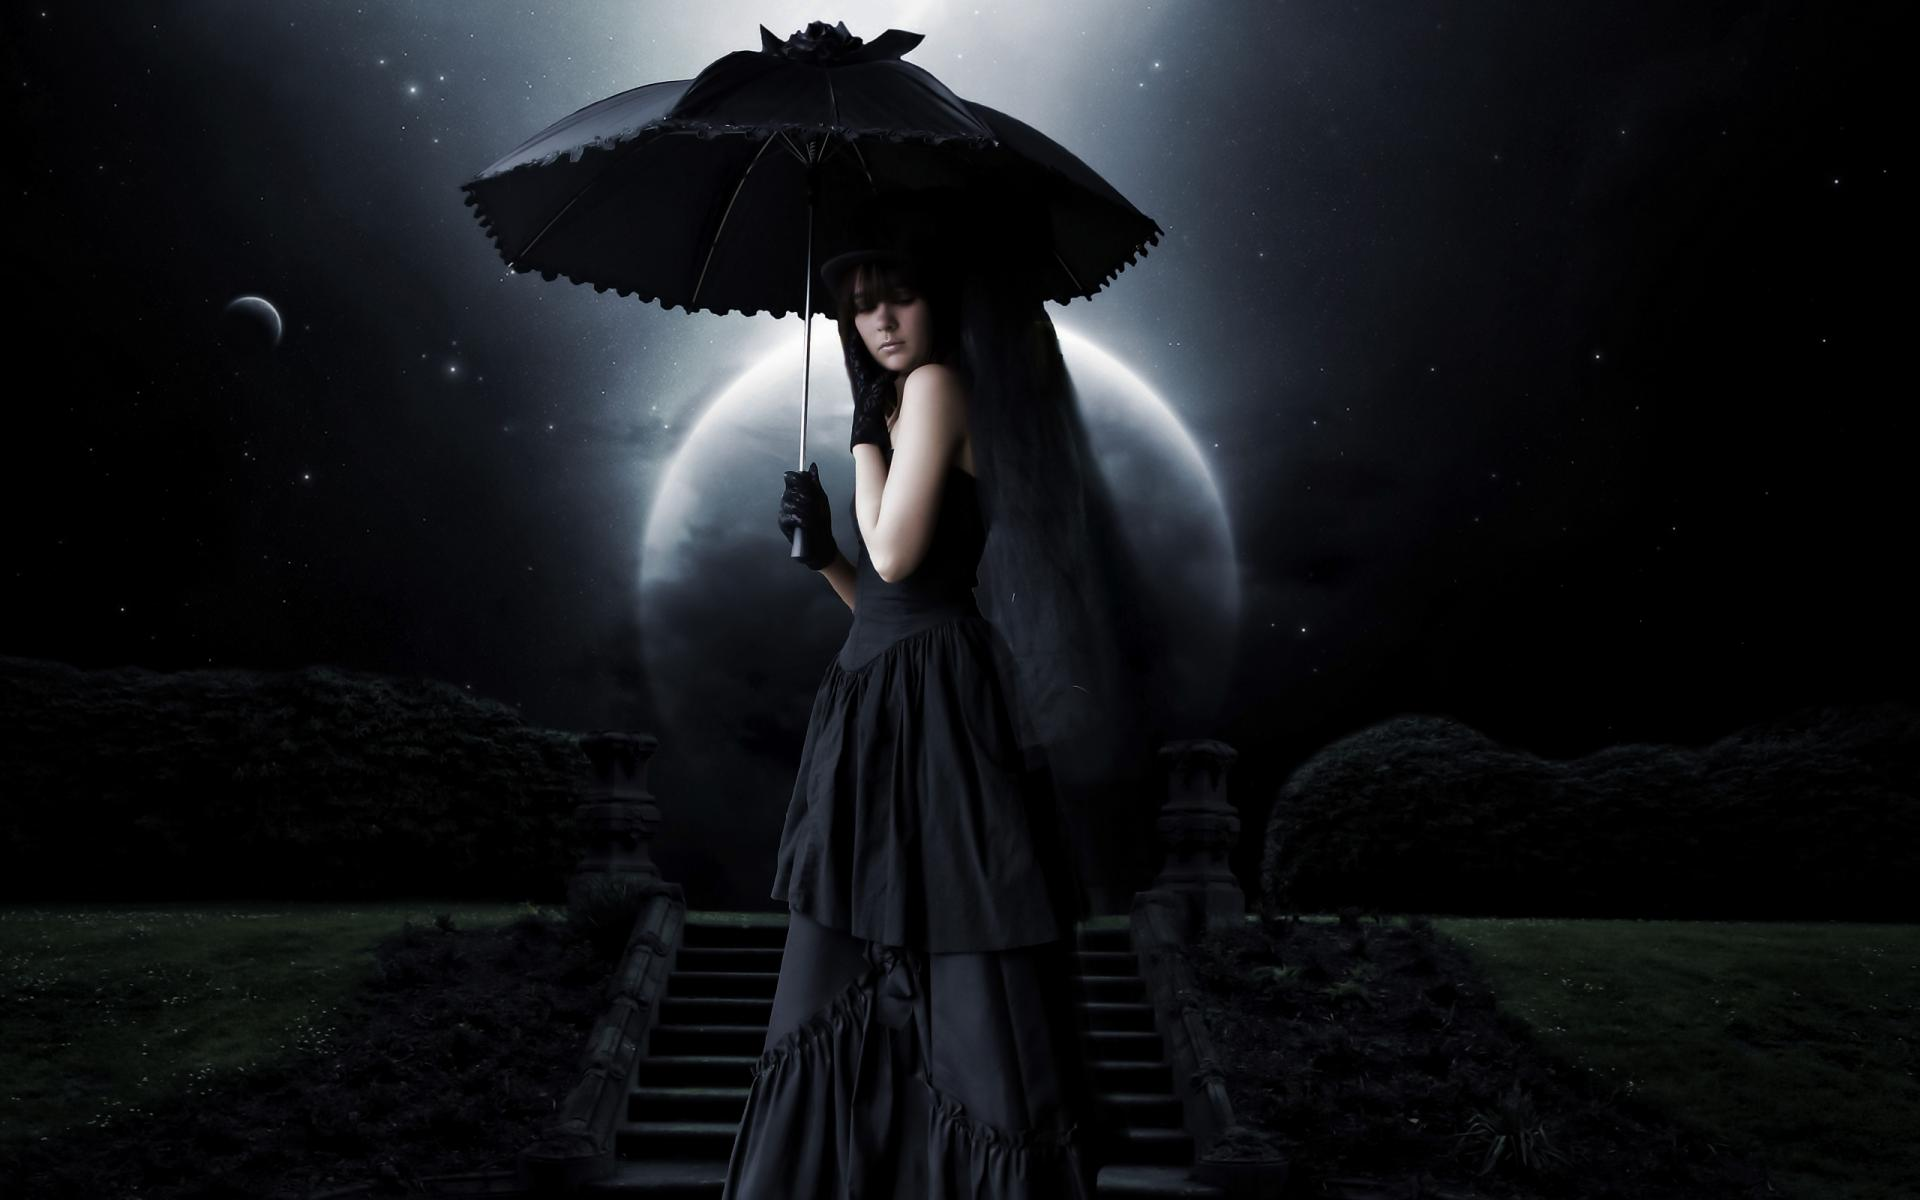 Dark   Gothic Woman Goth Dark Umbrella Wallpaper 1920x1200